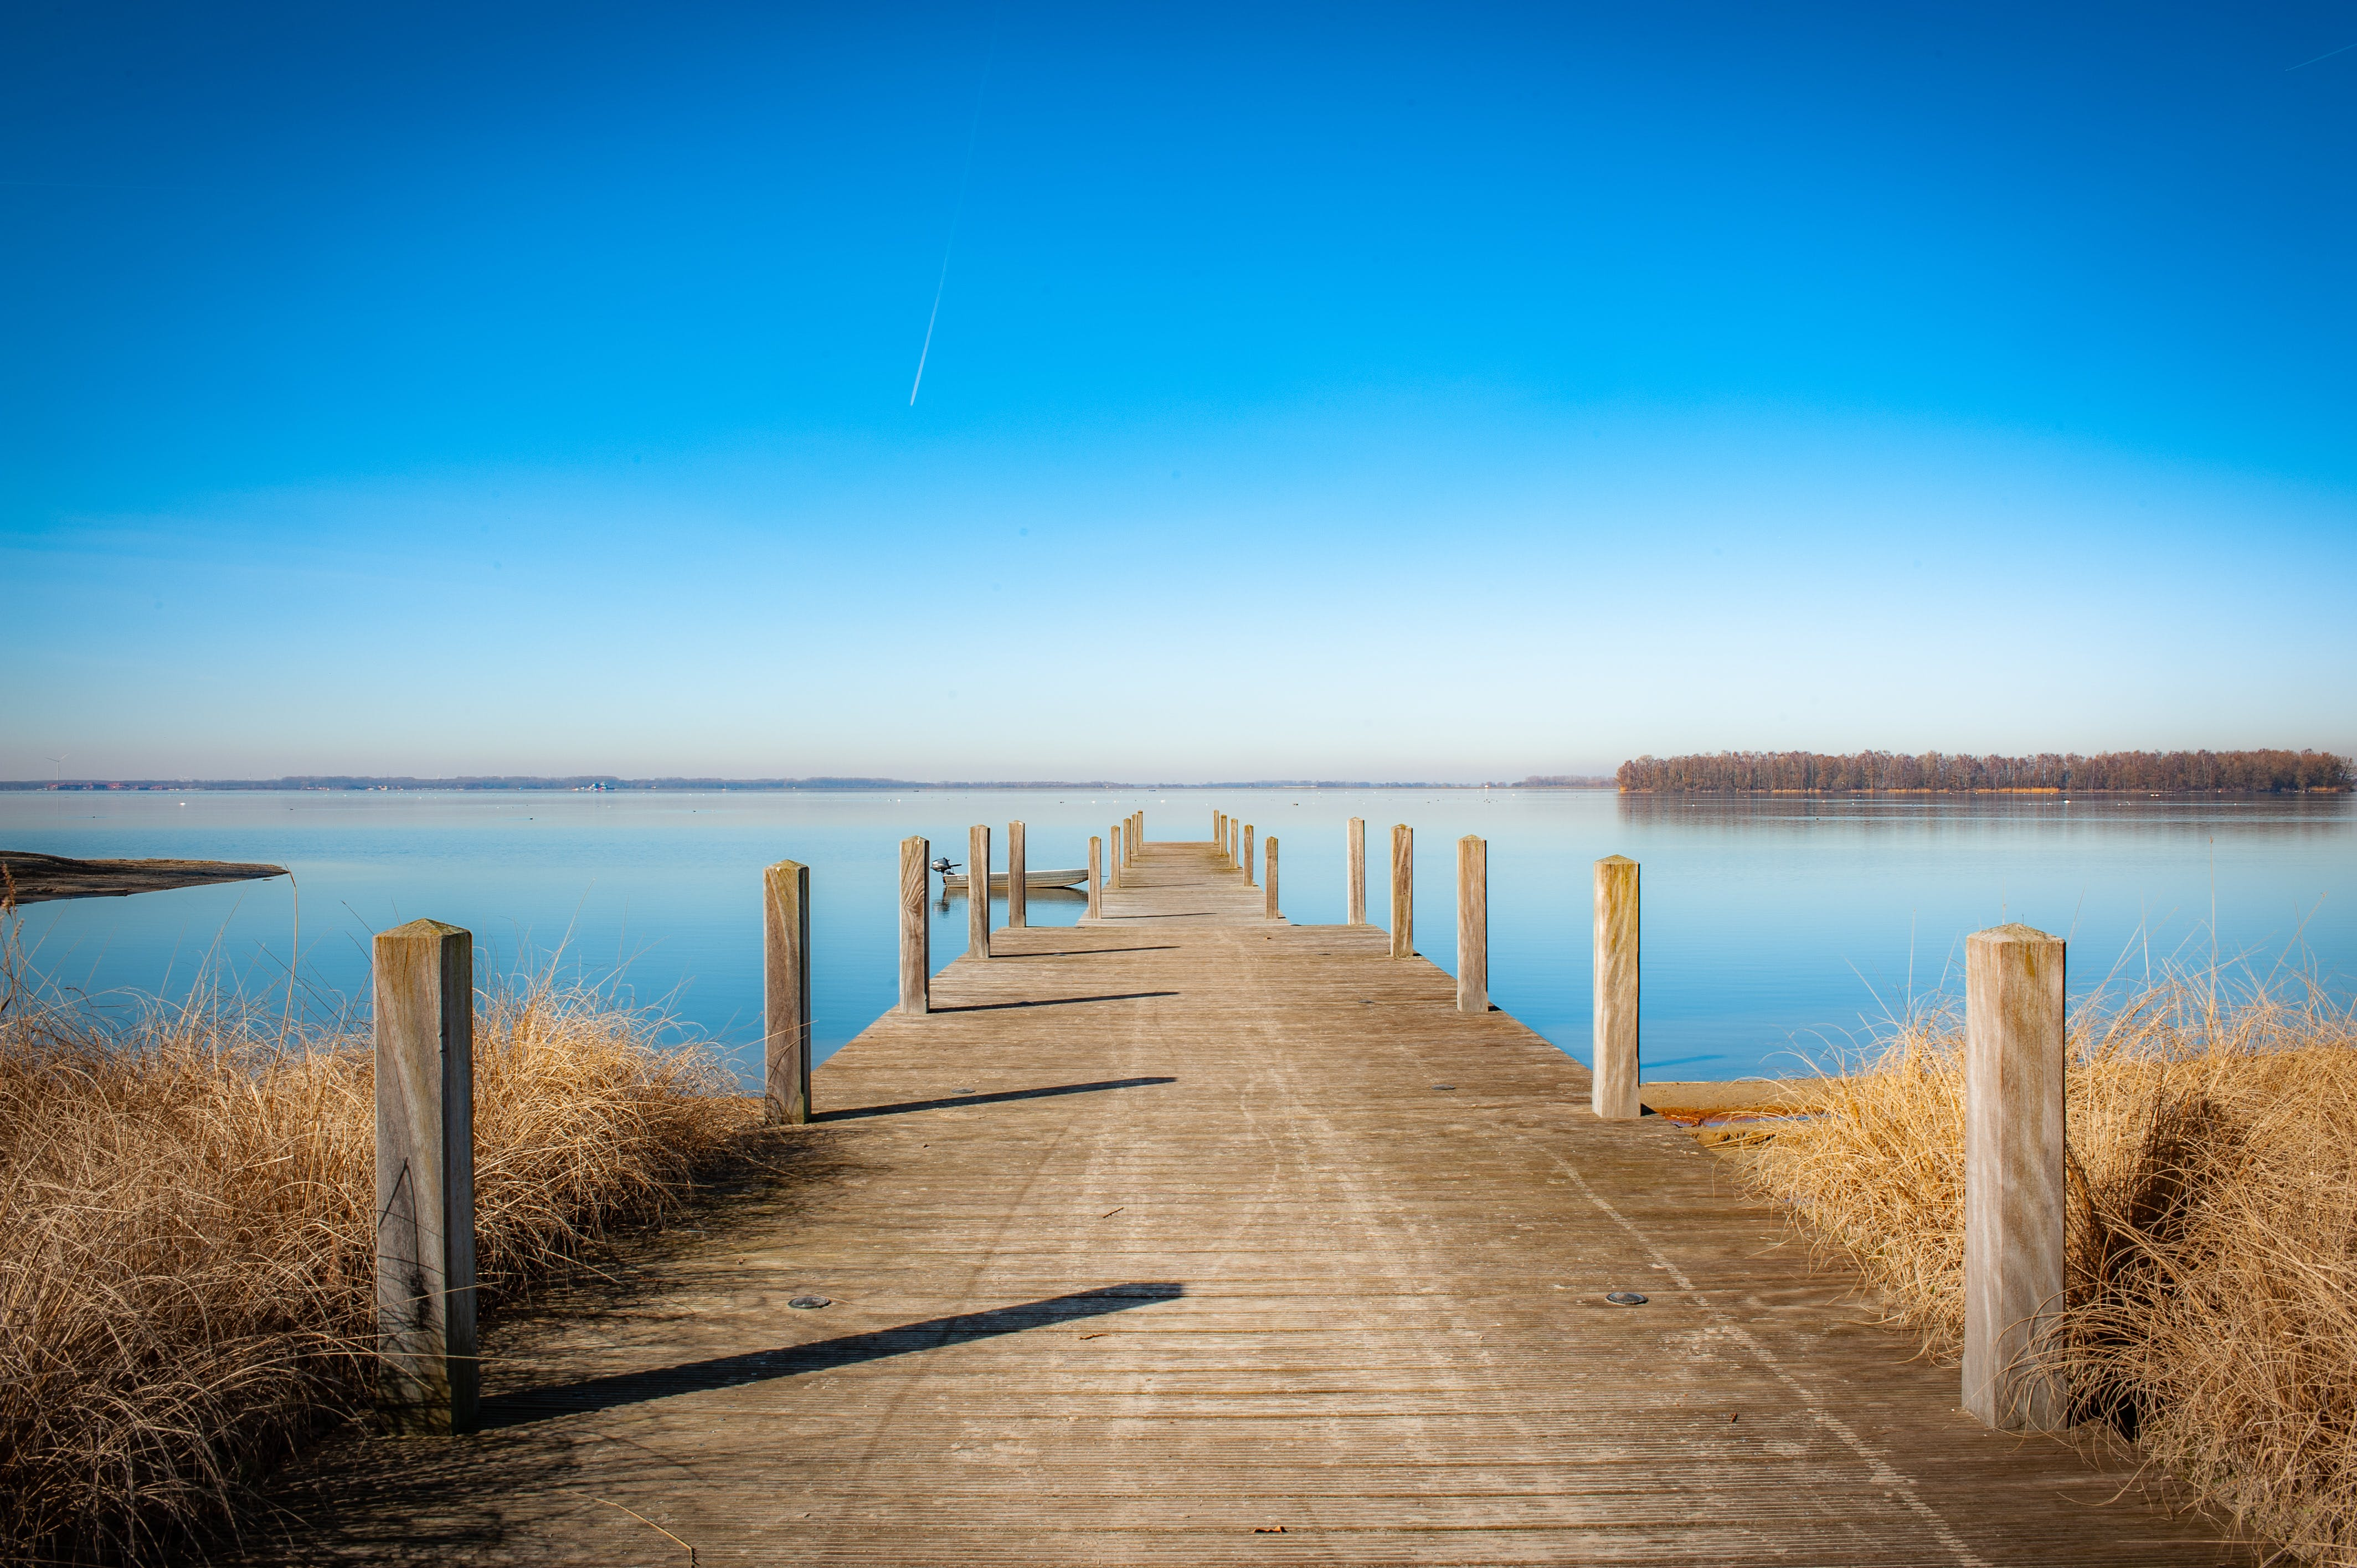 Free stock photo of beach, blue sky, calm waters, dock